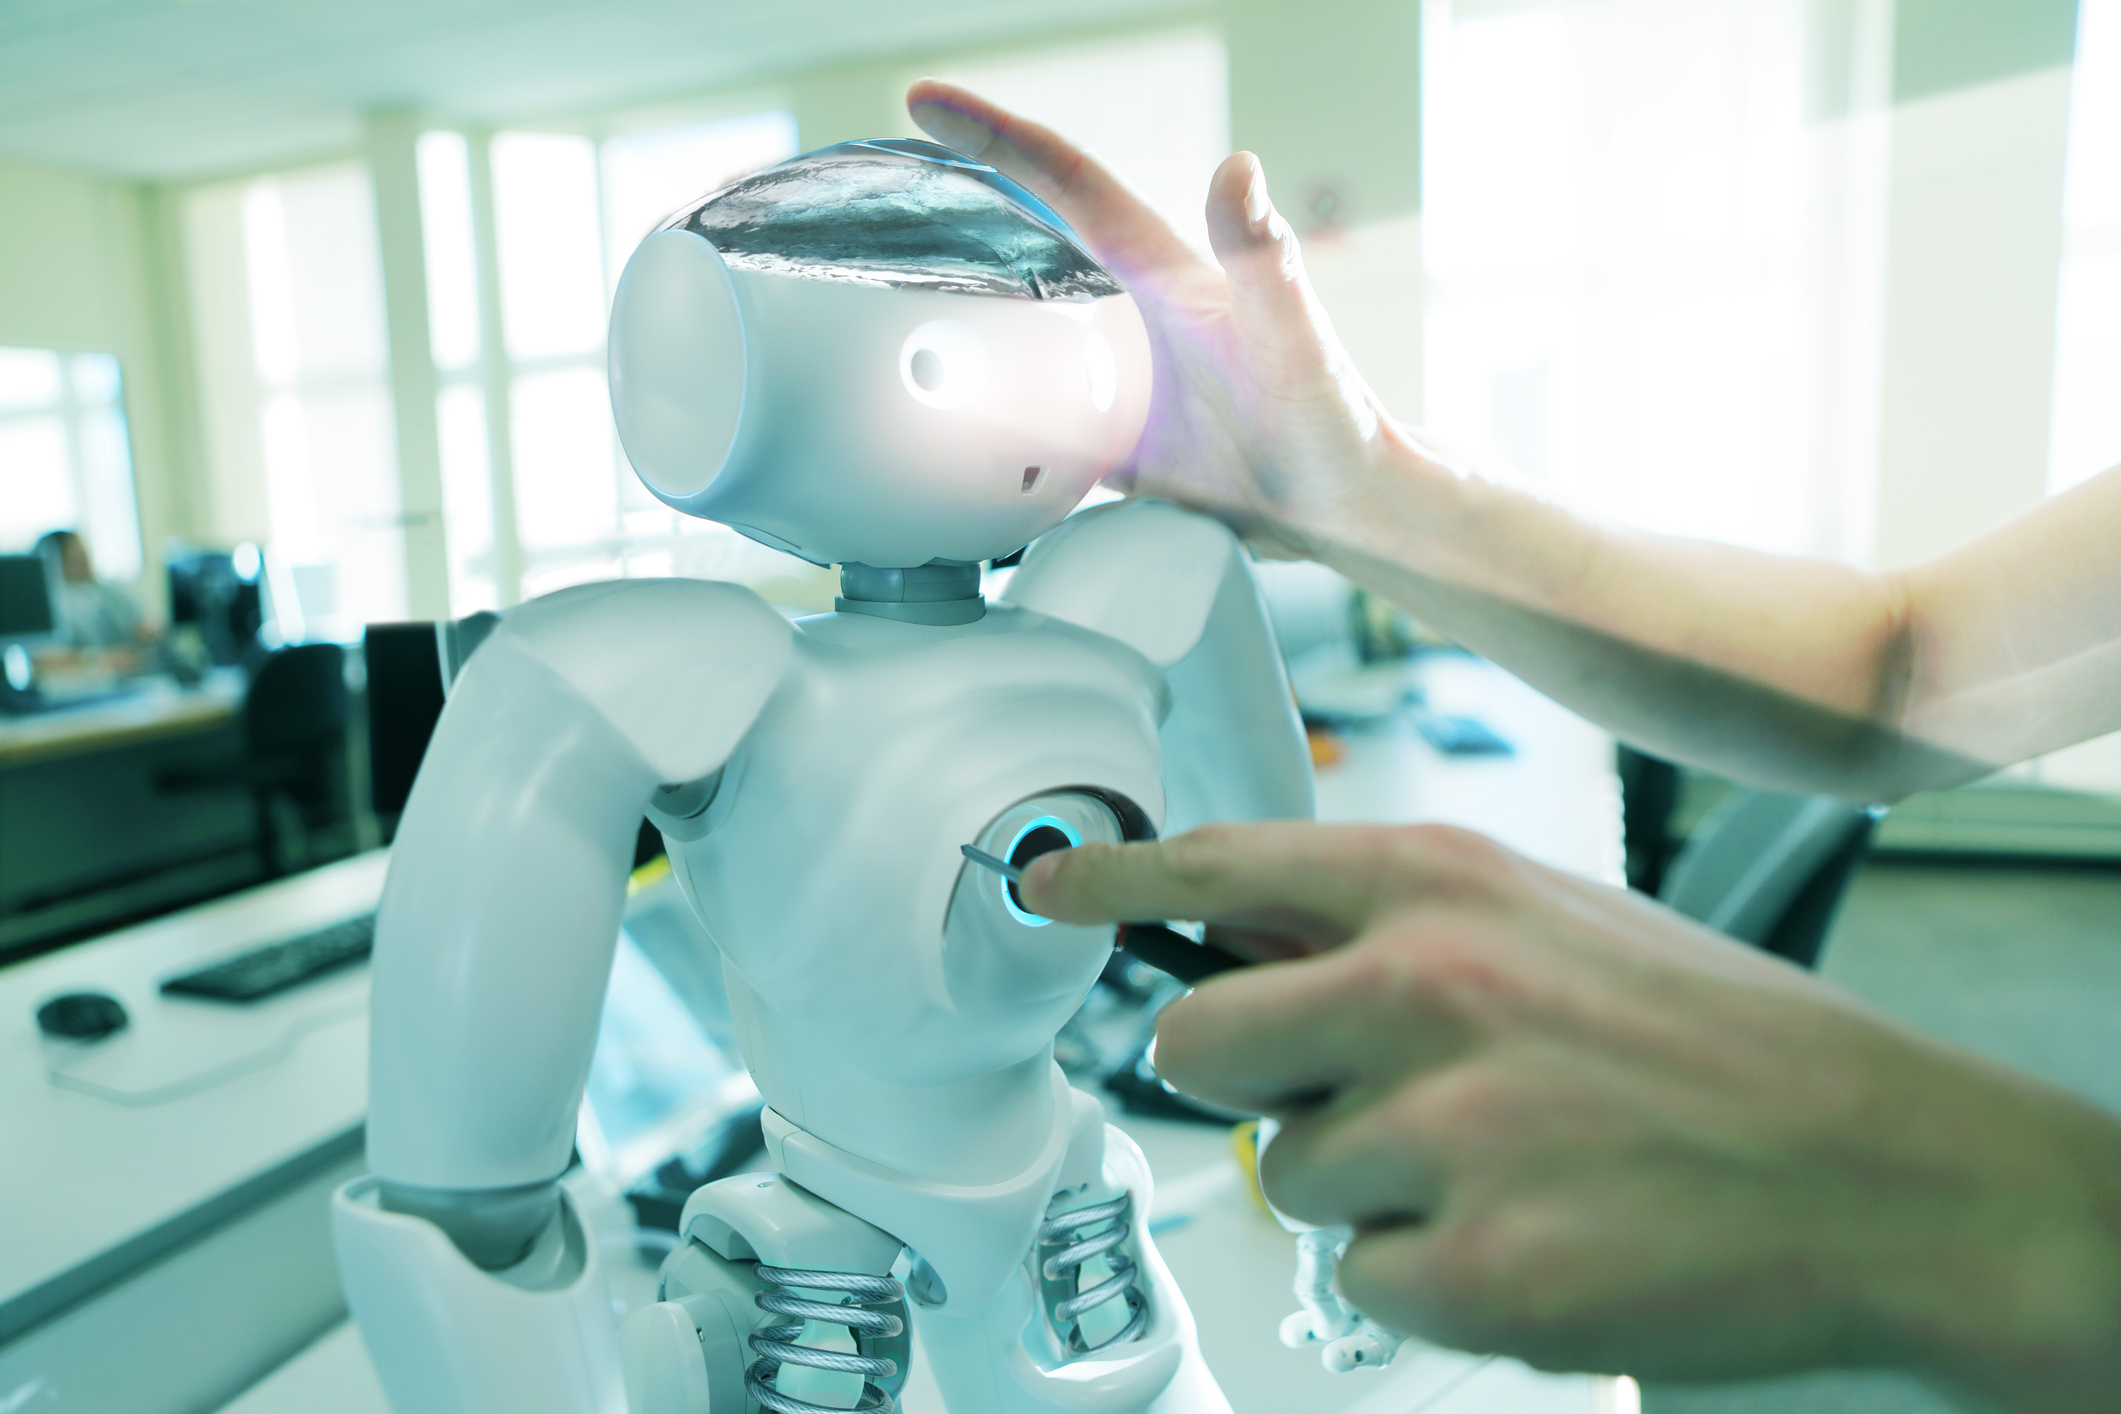 Don't fancy being replaced by a robot? You could give these careers a try